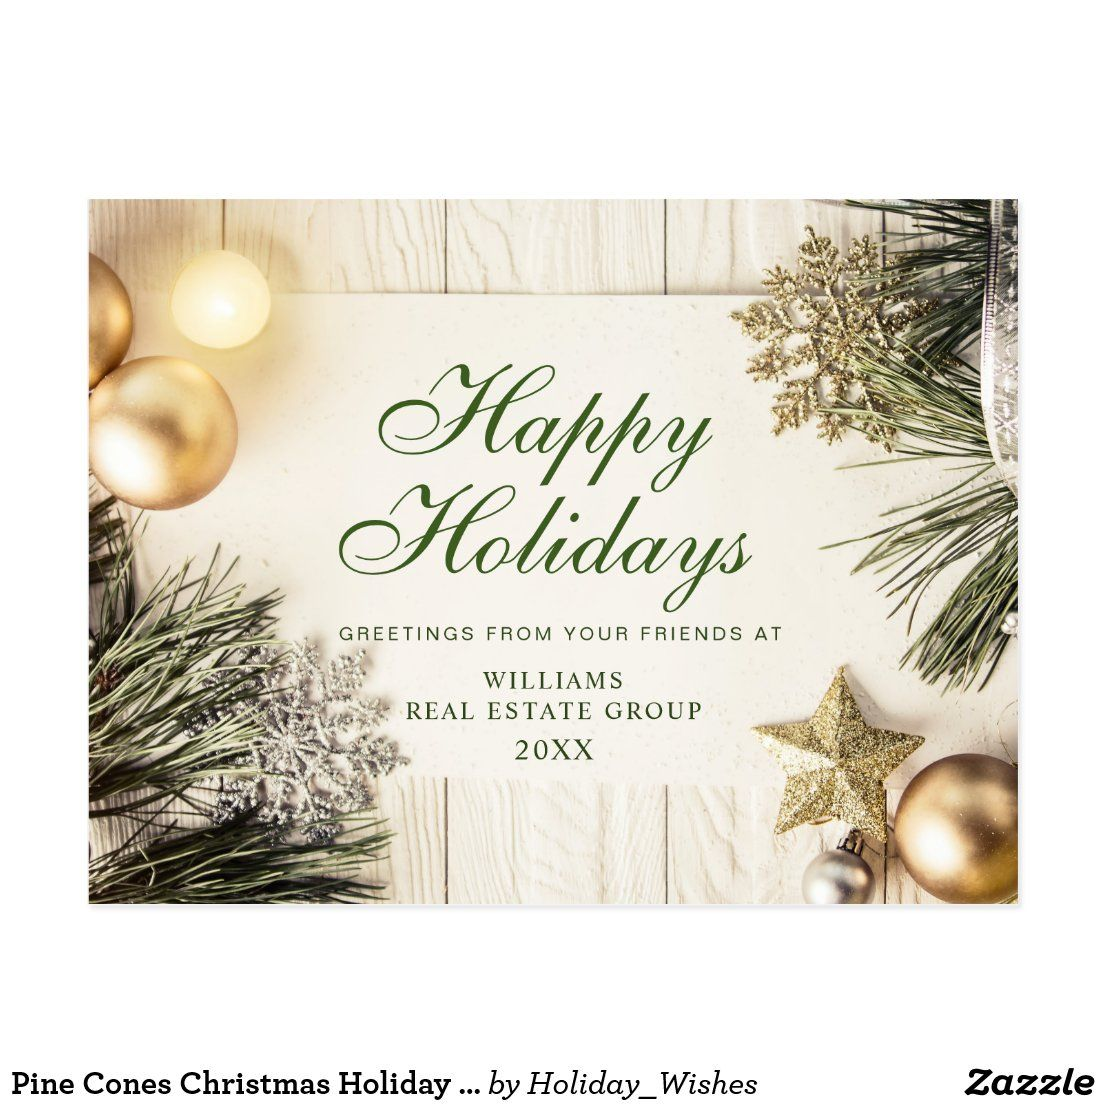 Pine Cones Christmas Holiday Corporate Greeting Postcard #zazzle #zazzlemade #christmas #newyear #customparty #partysupplies #custominvitation #invitations #holidaycards #customdecor #holidays #printondemand #customstationery #invitationtemplate #partyinvitation #partydecor #partydecorations #customgifts